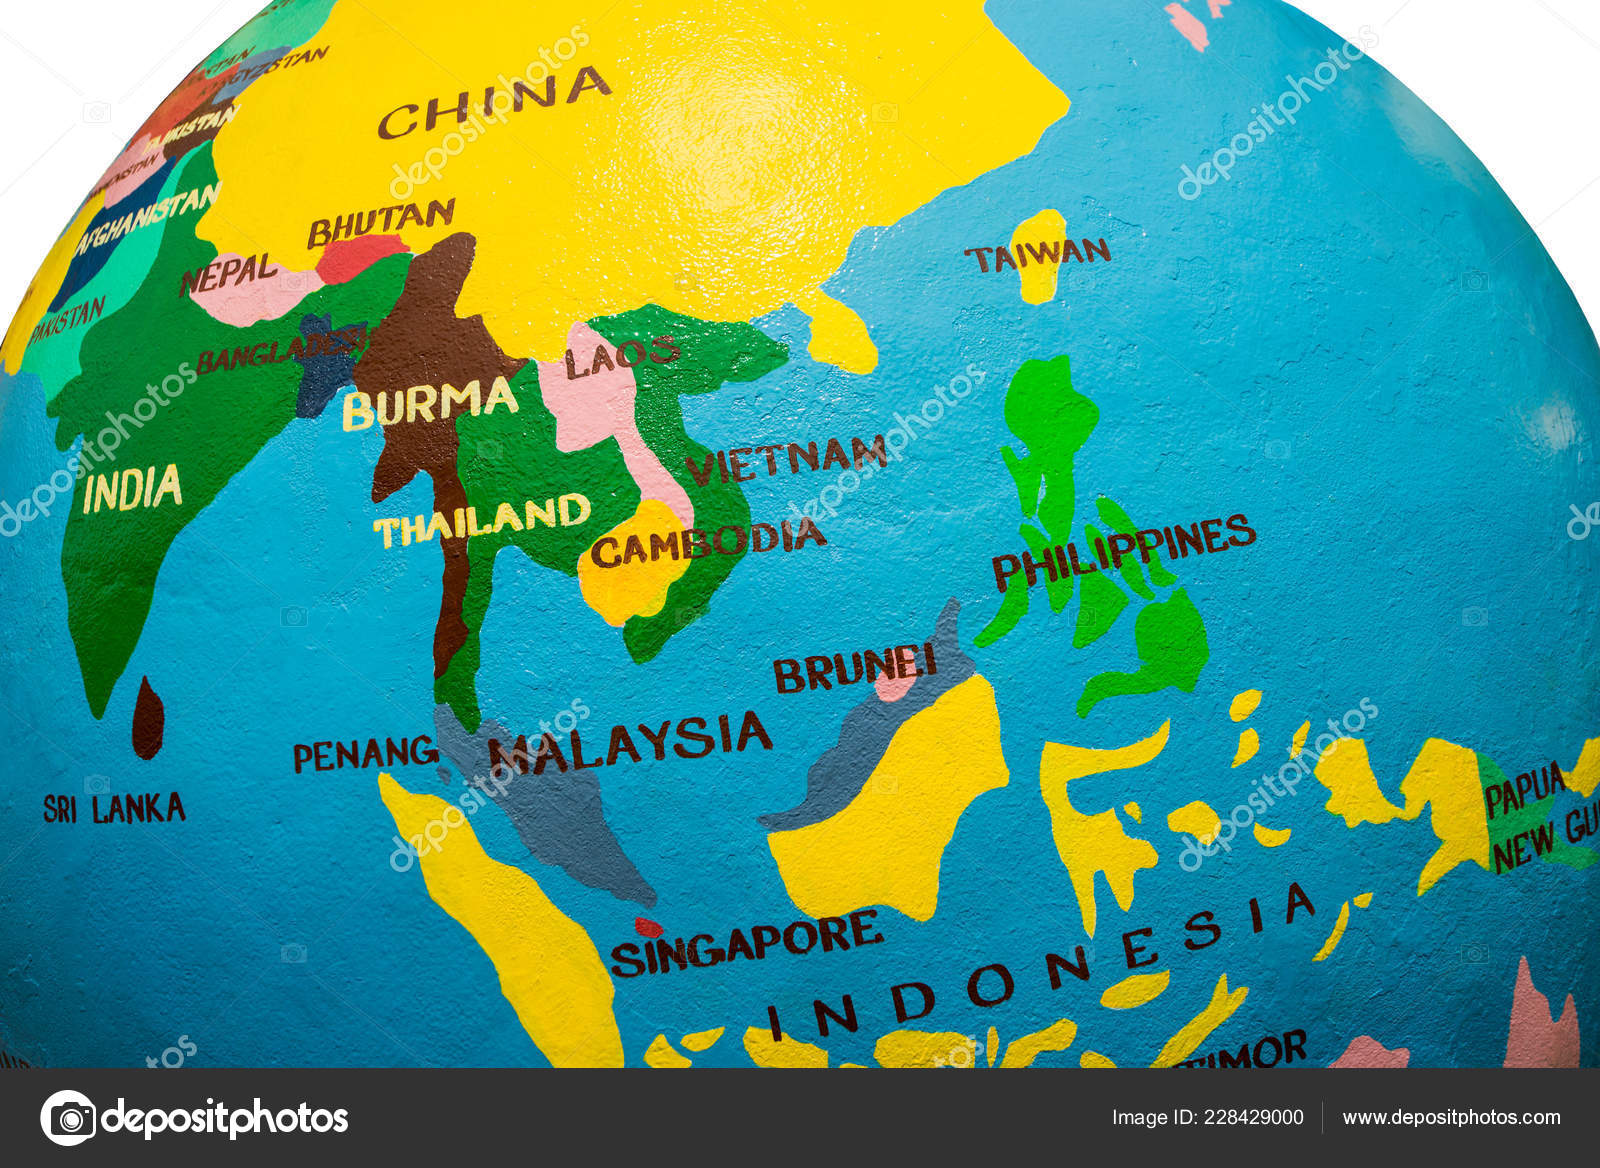 Map Of Asia Countries.Indochina Map Asia Bright Globe Asia Countries Stock Photo